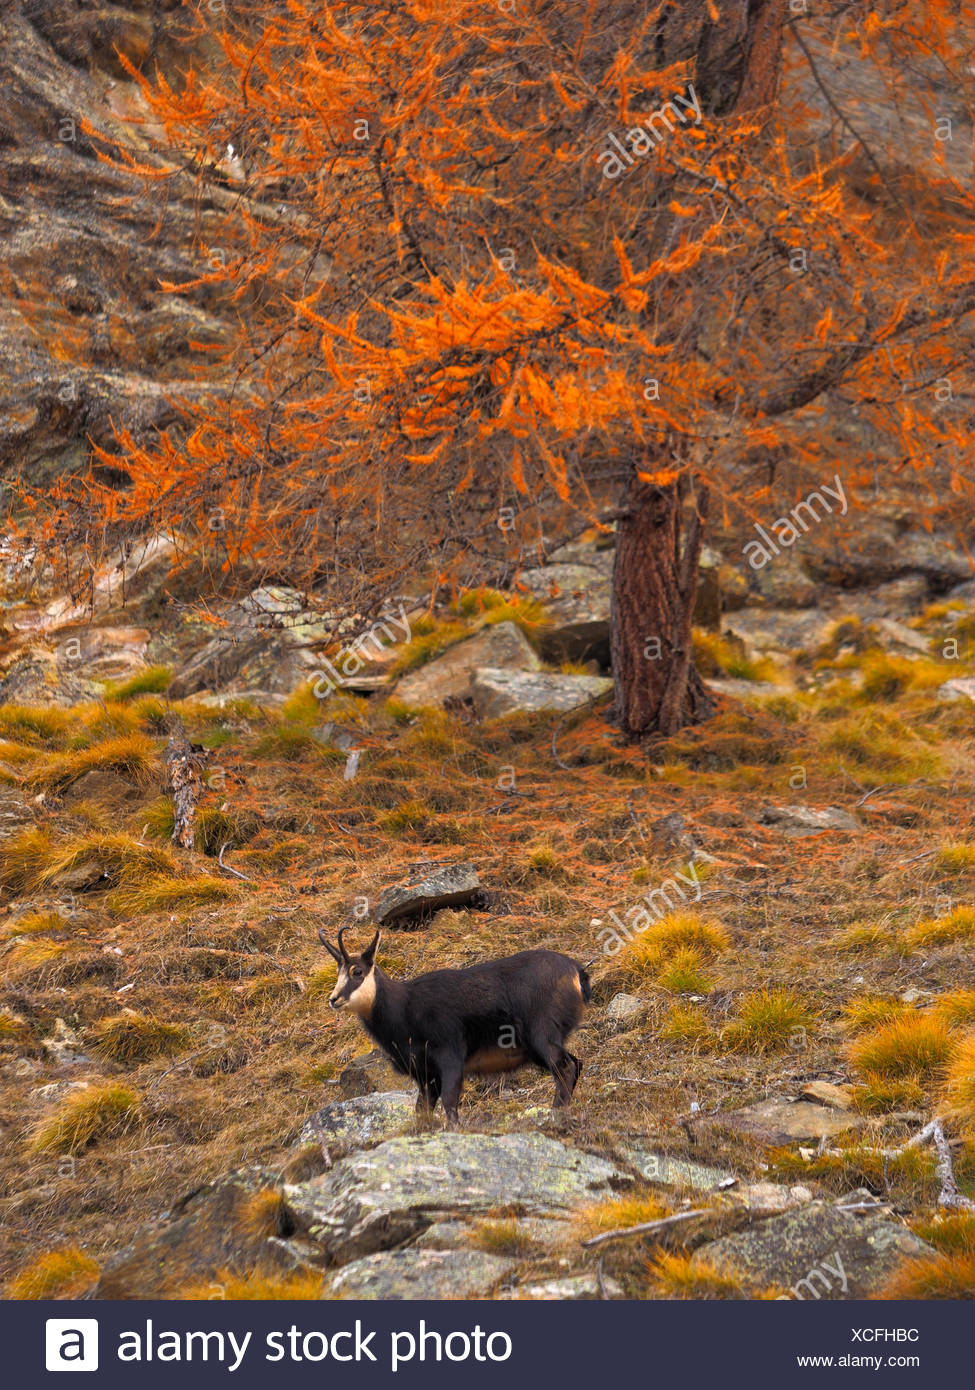 chamois (Rupicapra rupicapra), chamoison a slope in autumn, Italy, Gran Paradiso National Park - Stock Image